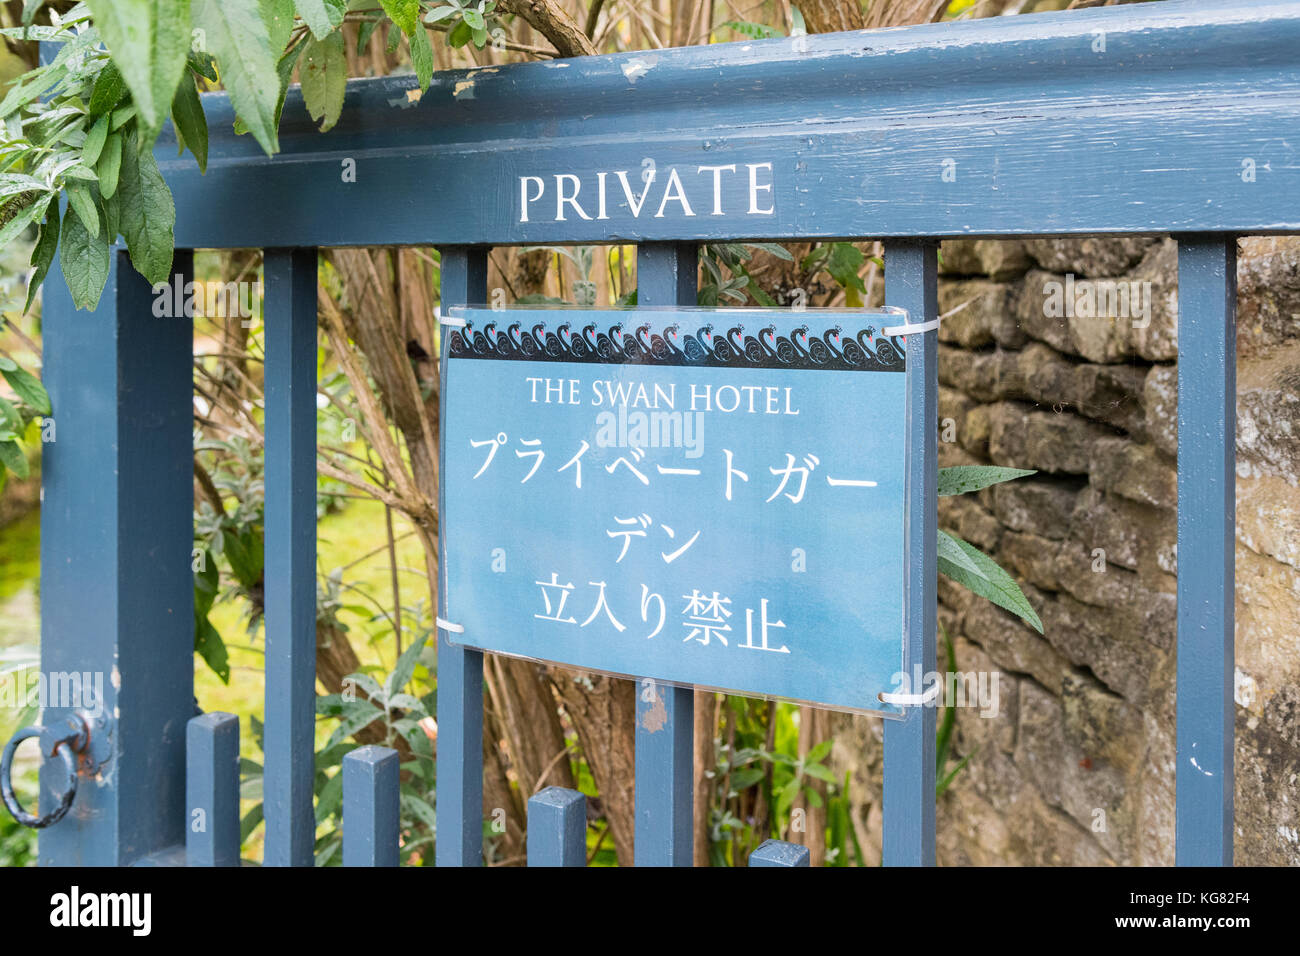 Private sign written in English and Japanese - The Swan Hotel, Bibury, england, UK - Stock Image